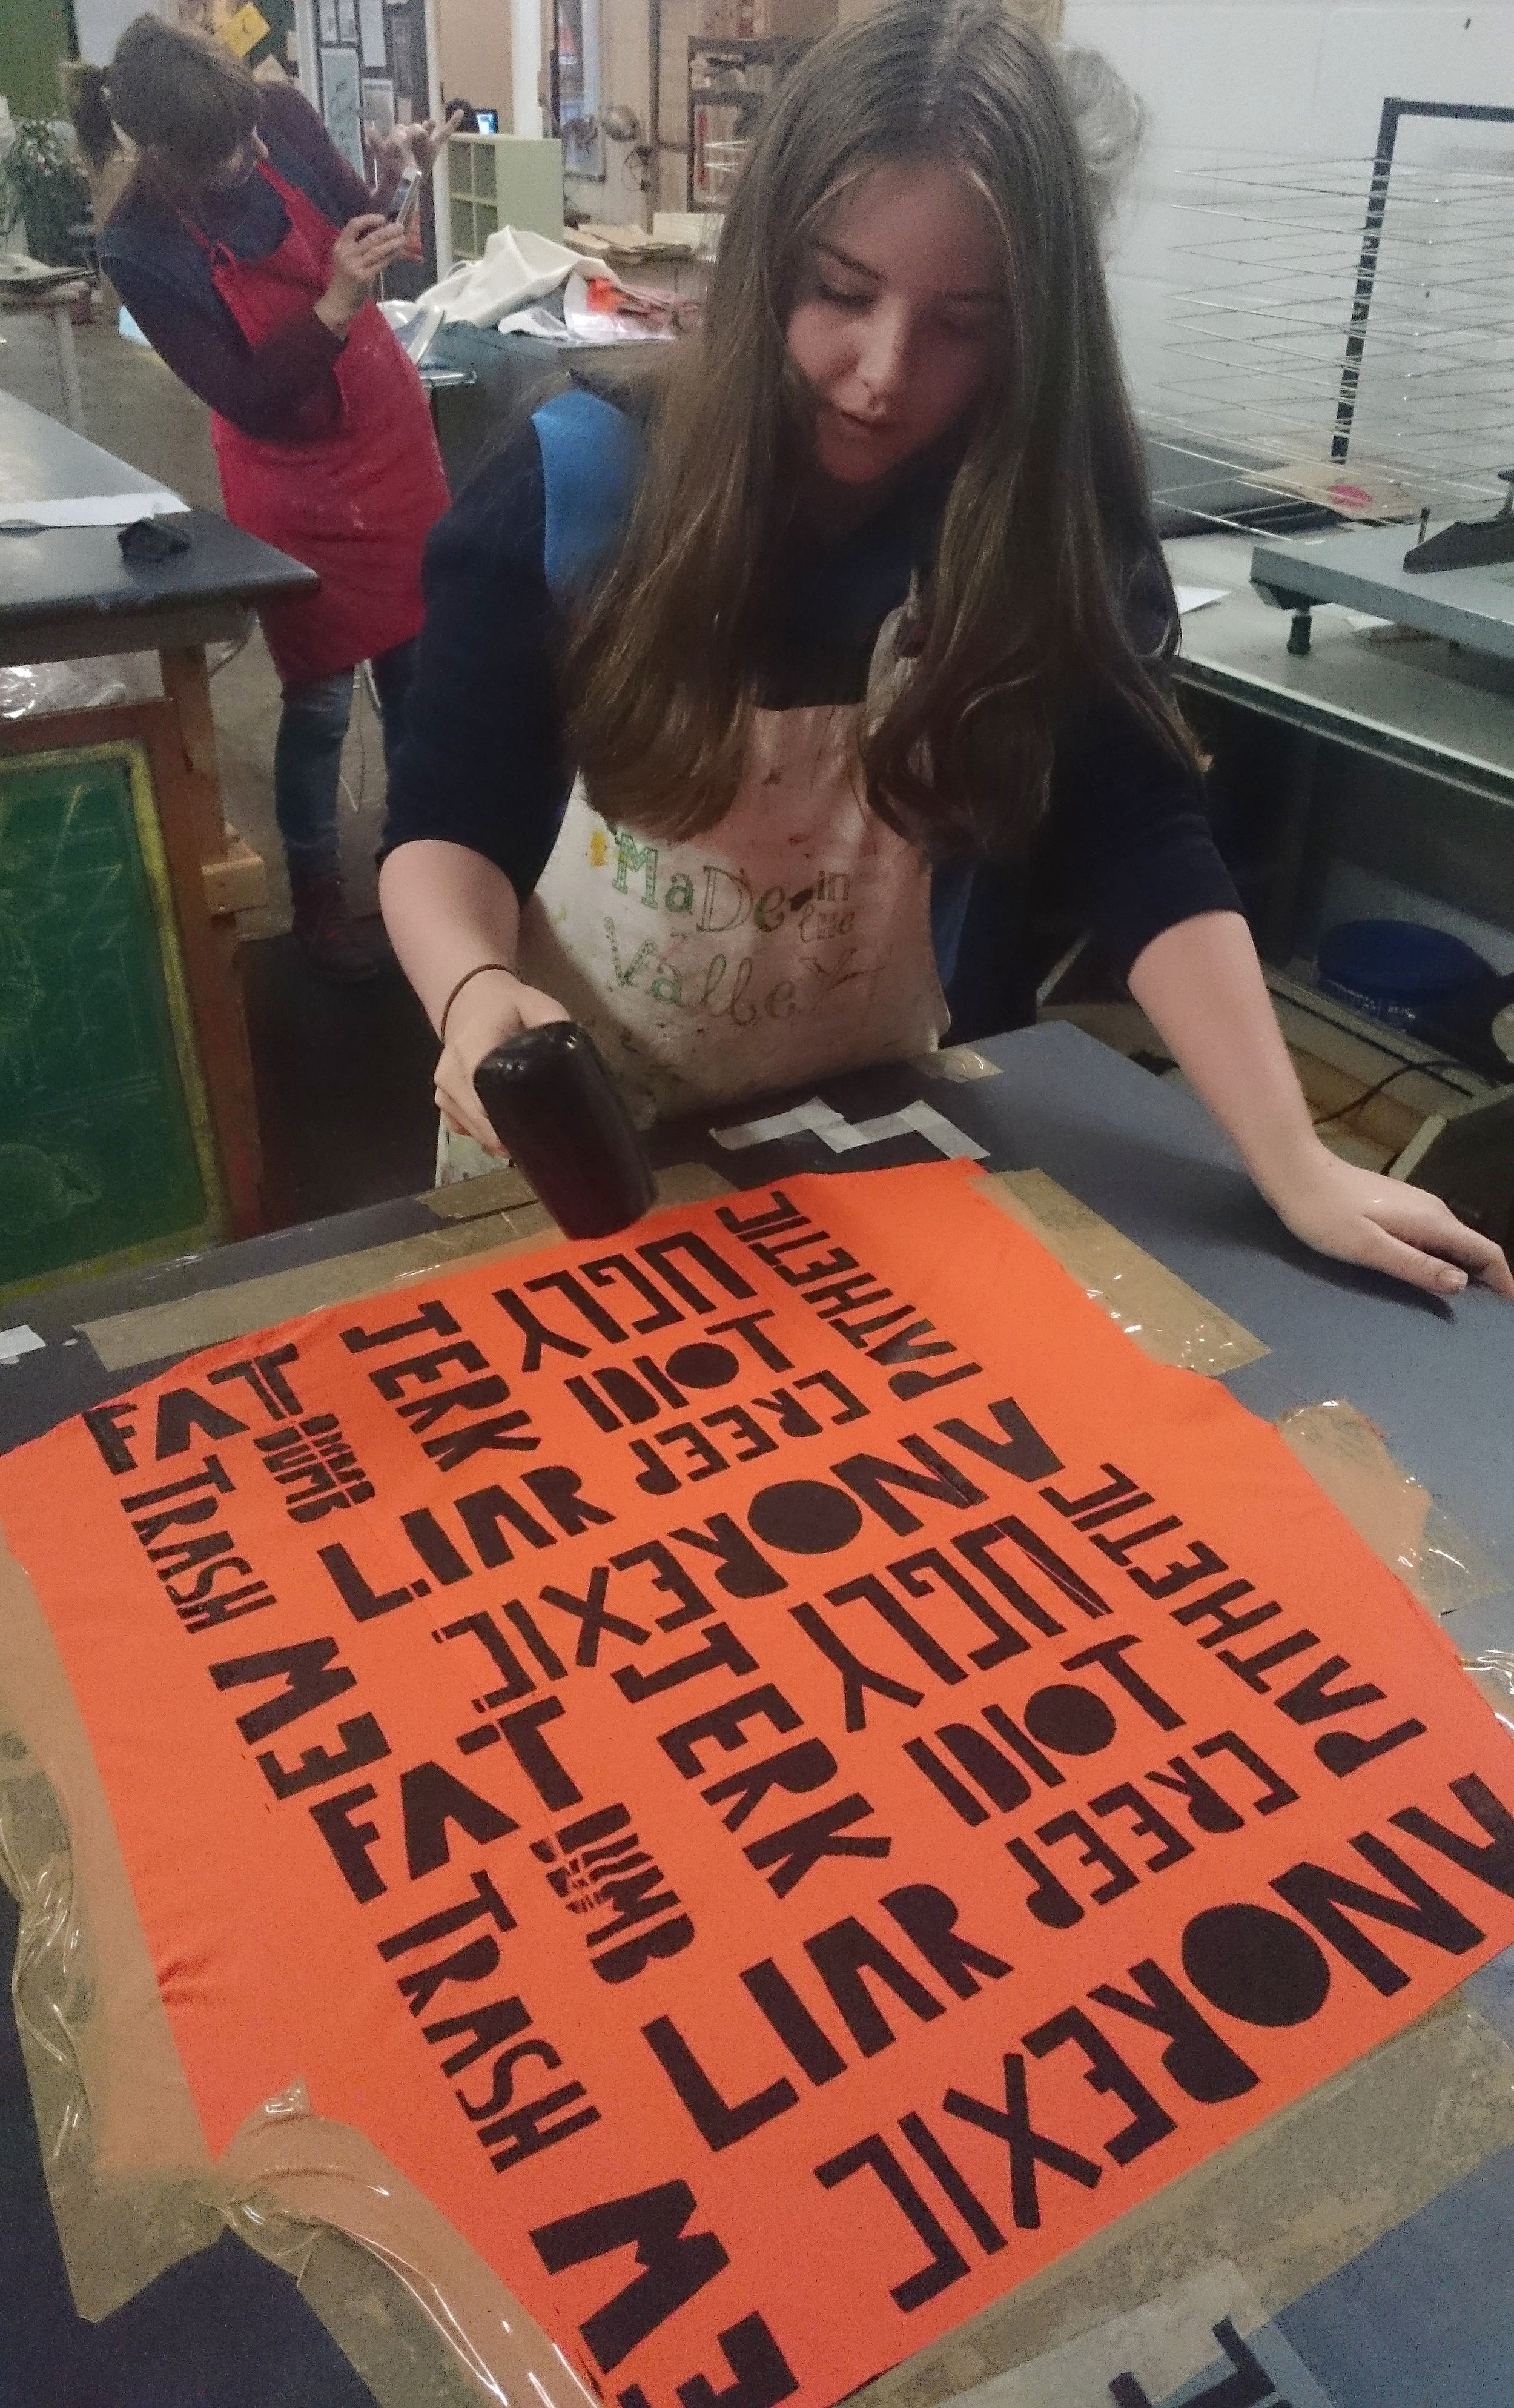 Drying the printing ink